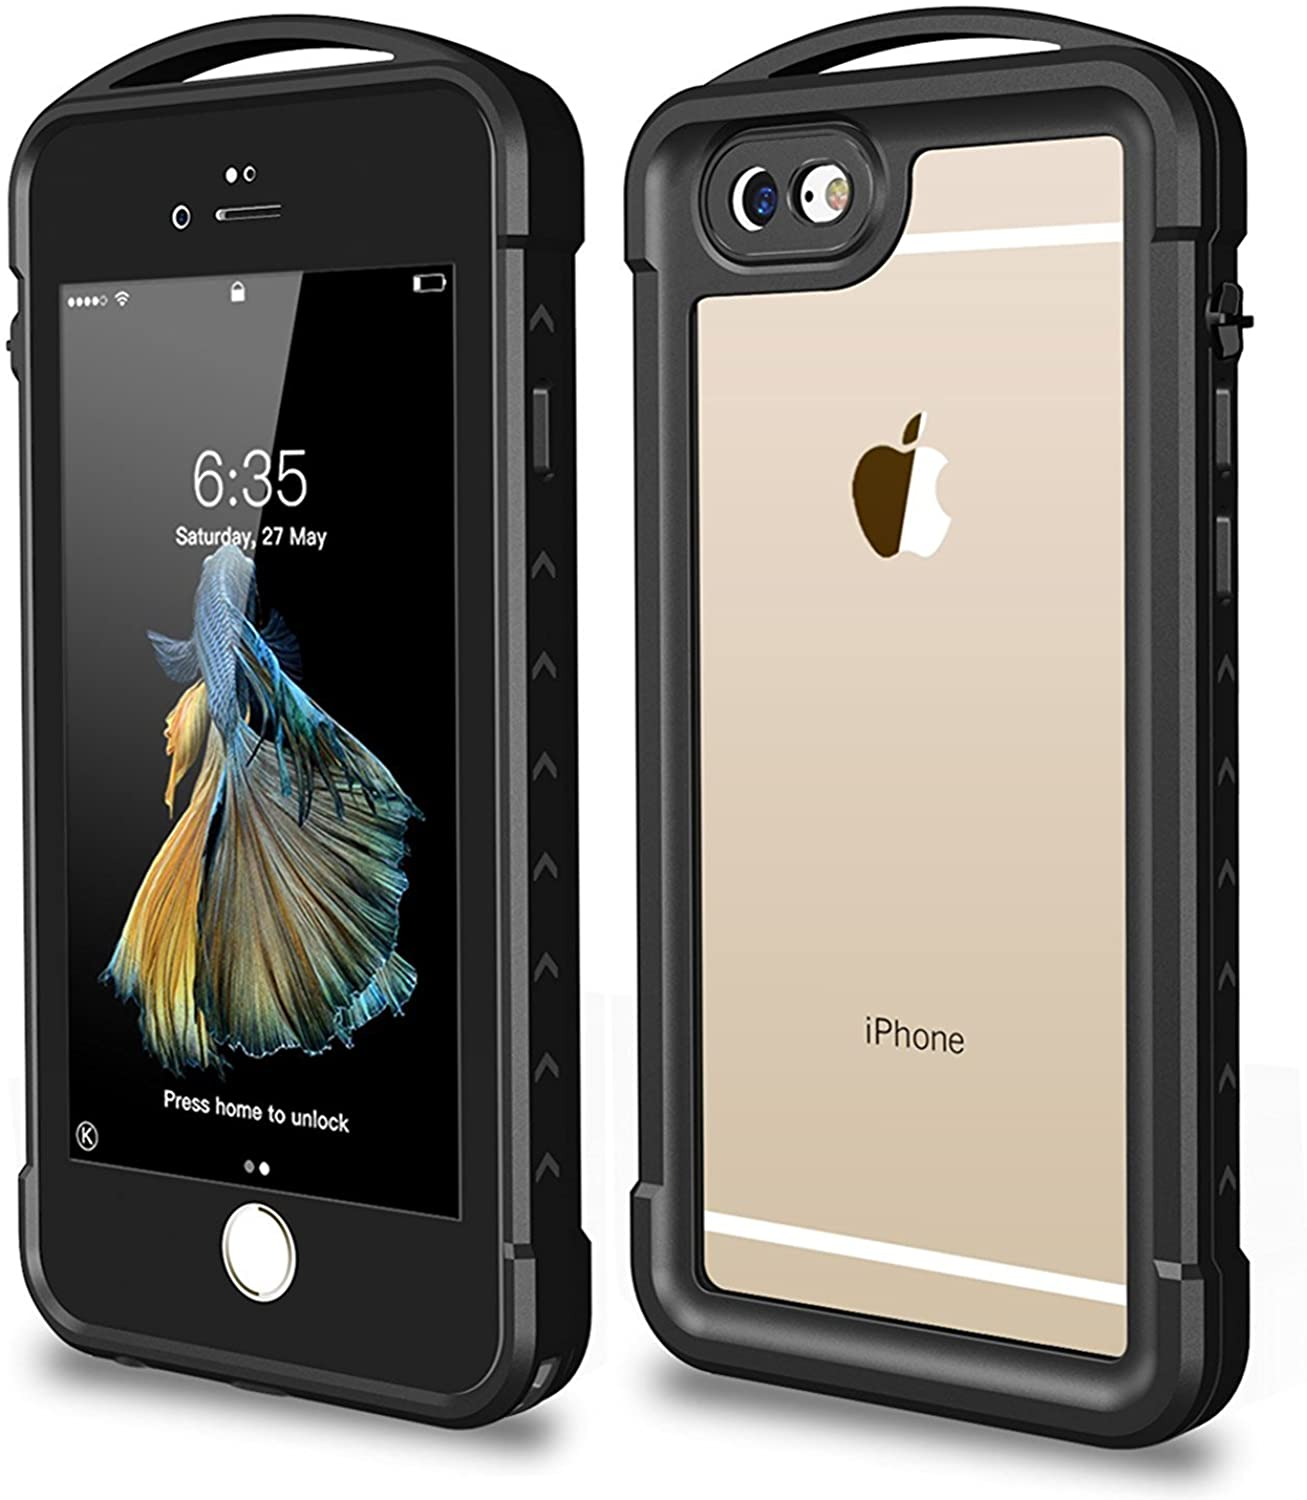 Snowfox iPhone 6 / 6s Waterproof Case, Outdoor Underwater Full Body Protective Cover Snowproof Dustproof Rugged IP68 Certified Waterproof Case for Apple iPhone 6 / 6S (Black)